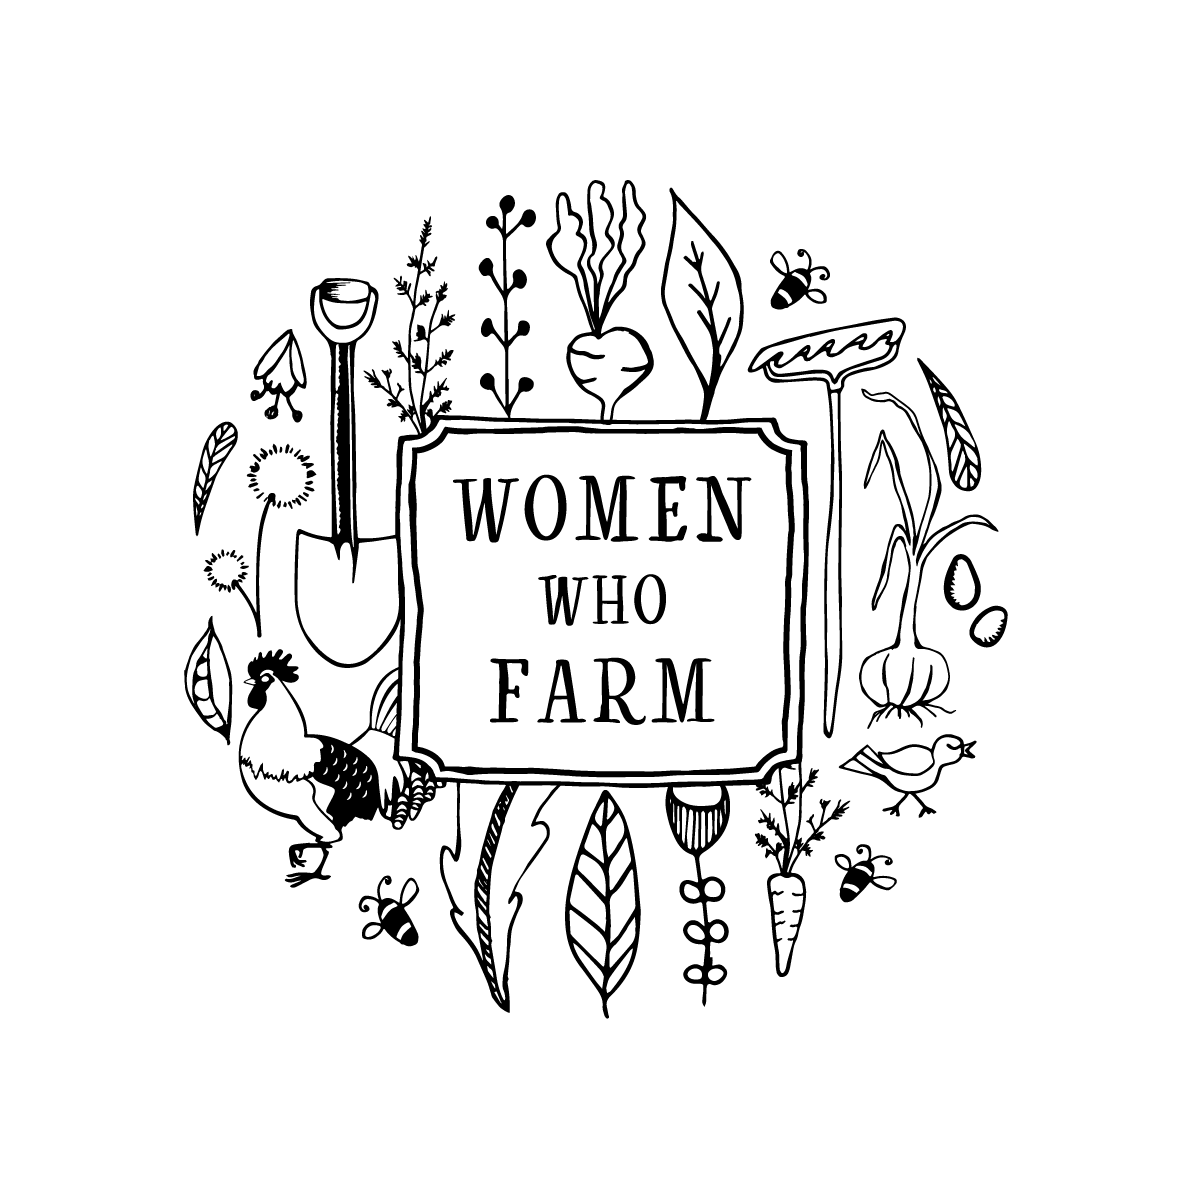 Drawing farmer occupation. Stories of women who